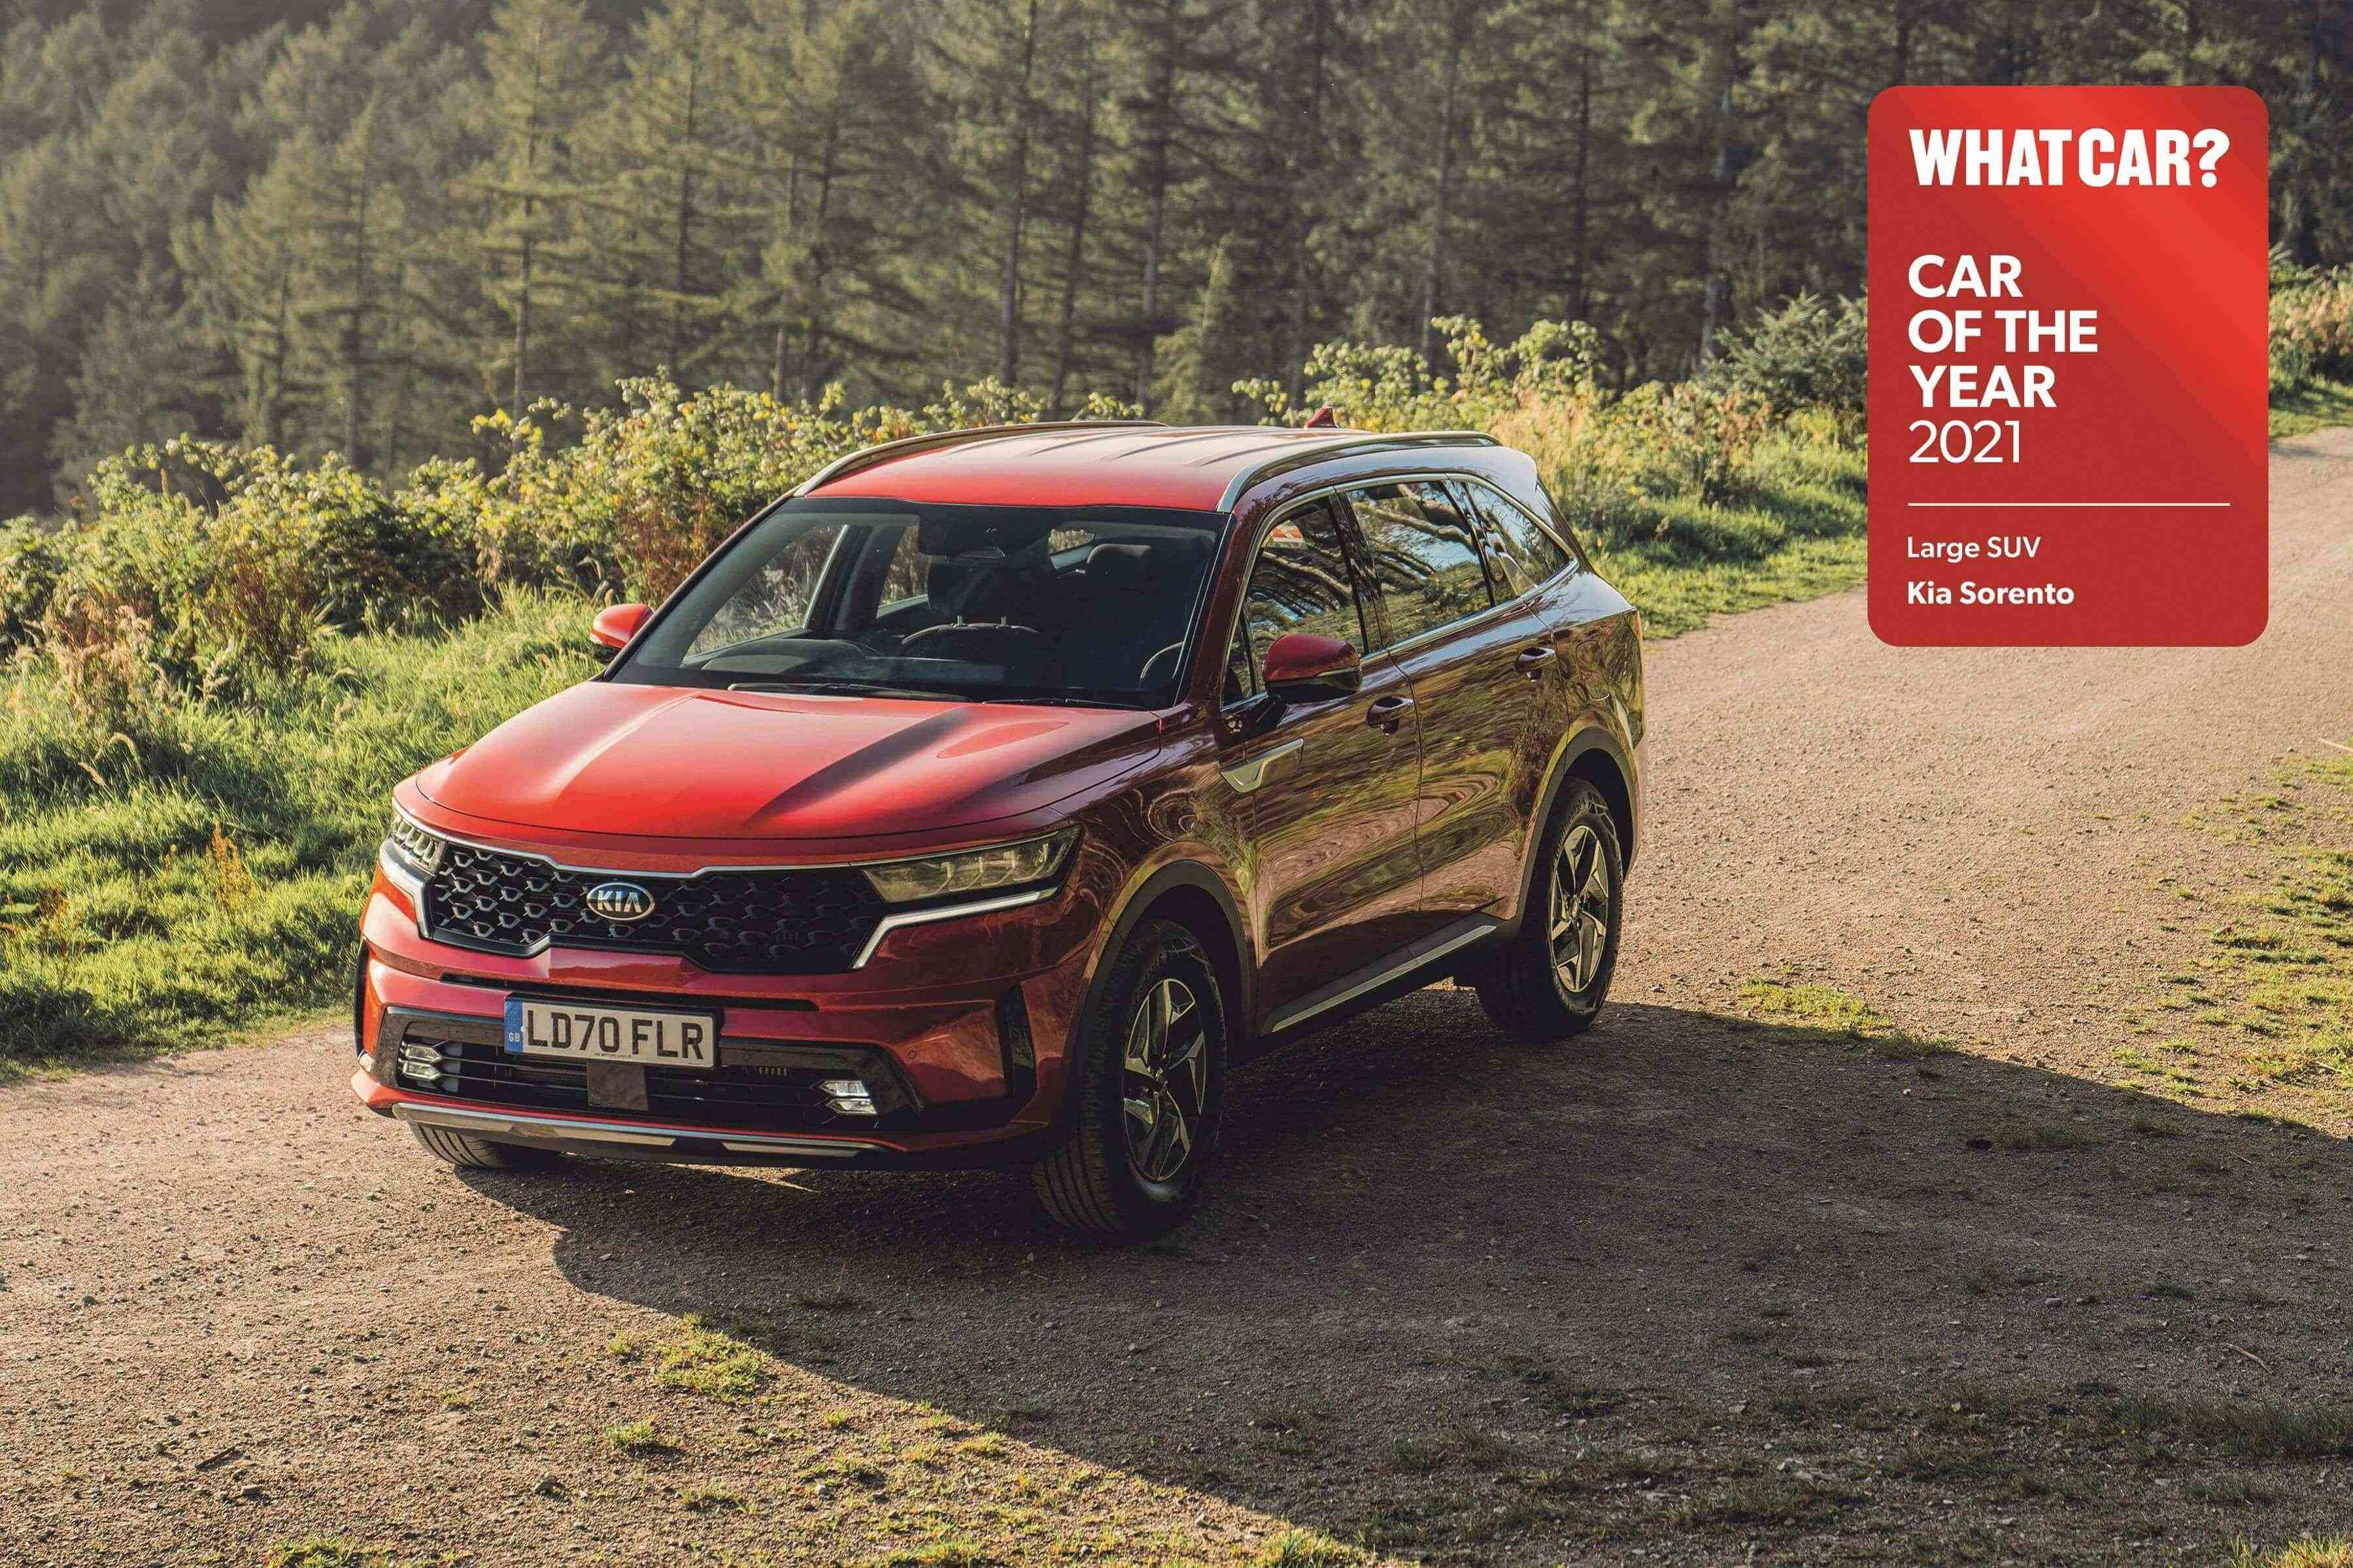 All-new Sorento wins 'Large SUV of the year' at 2021